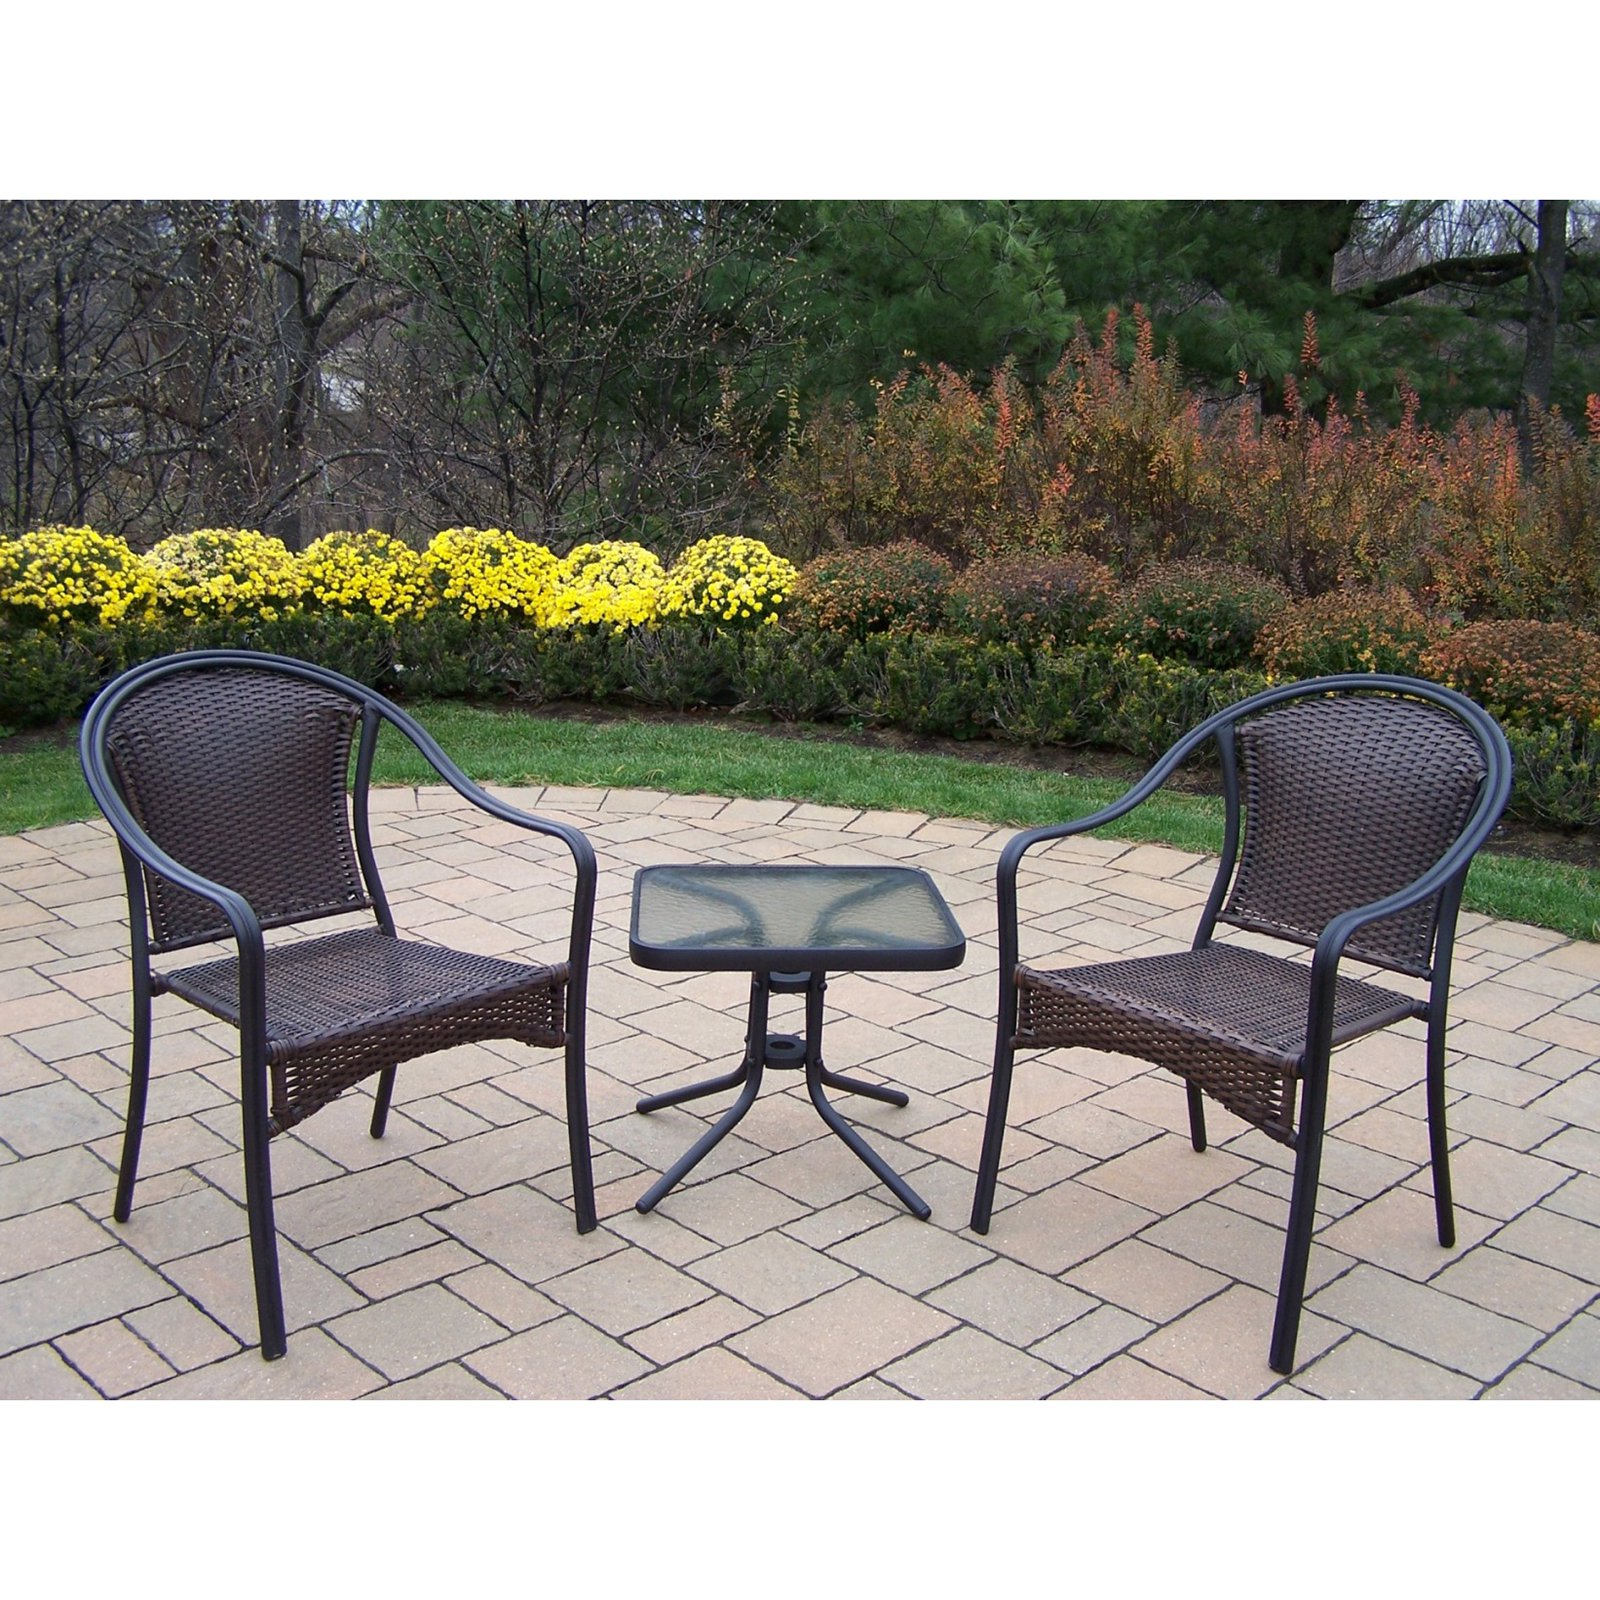 Oakland Living Tuscany 3 Piece Chat Set